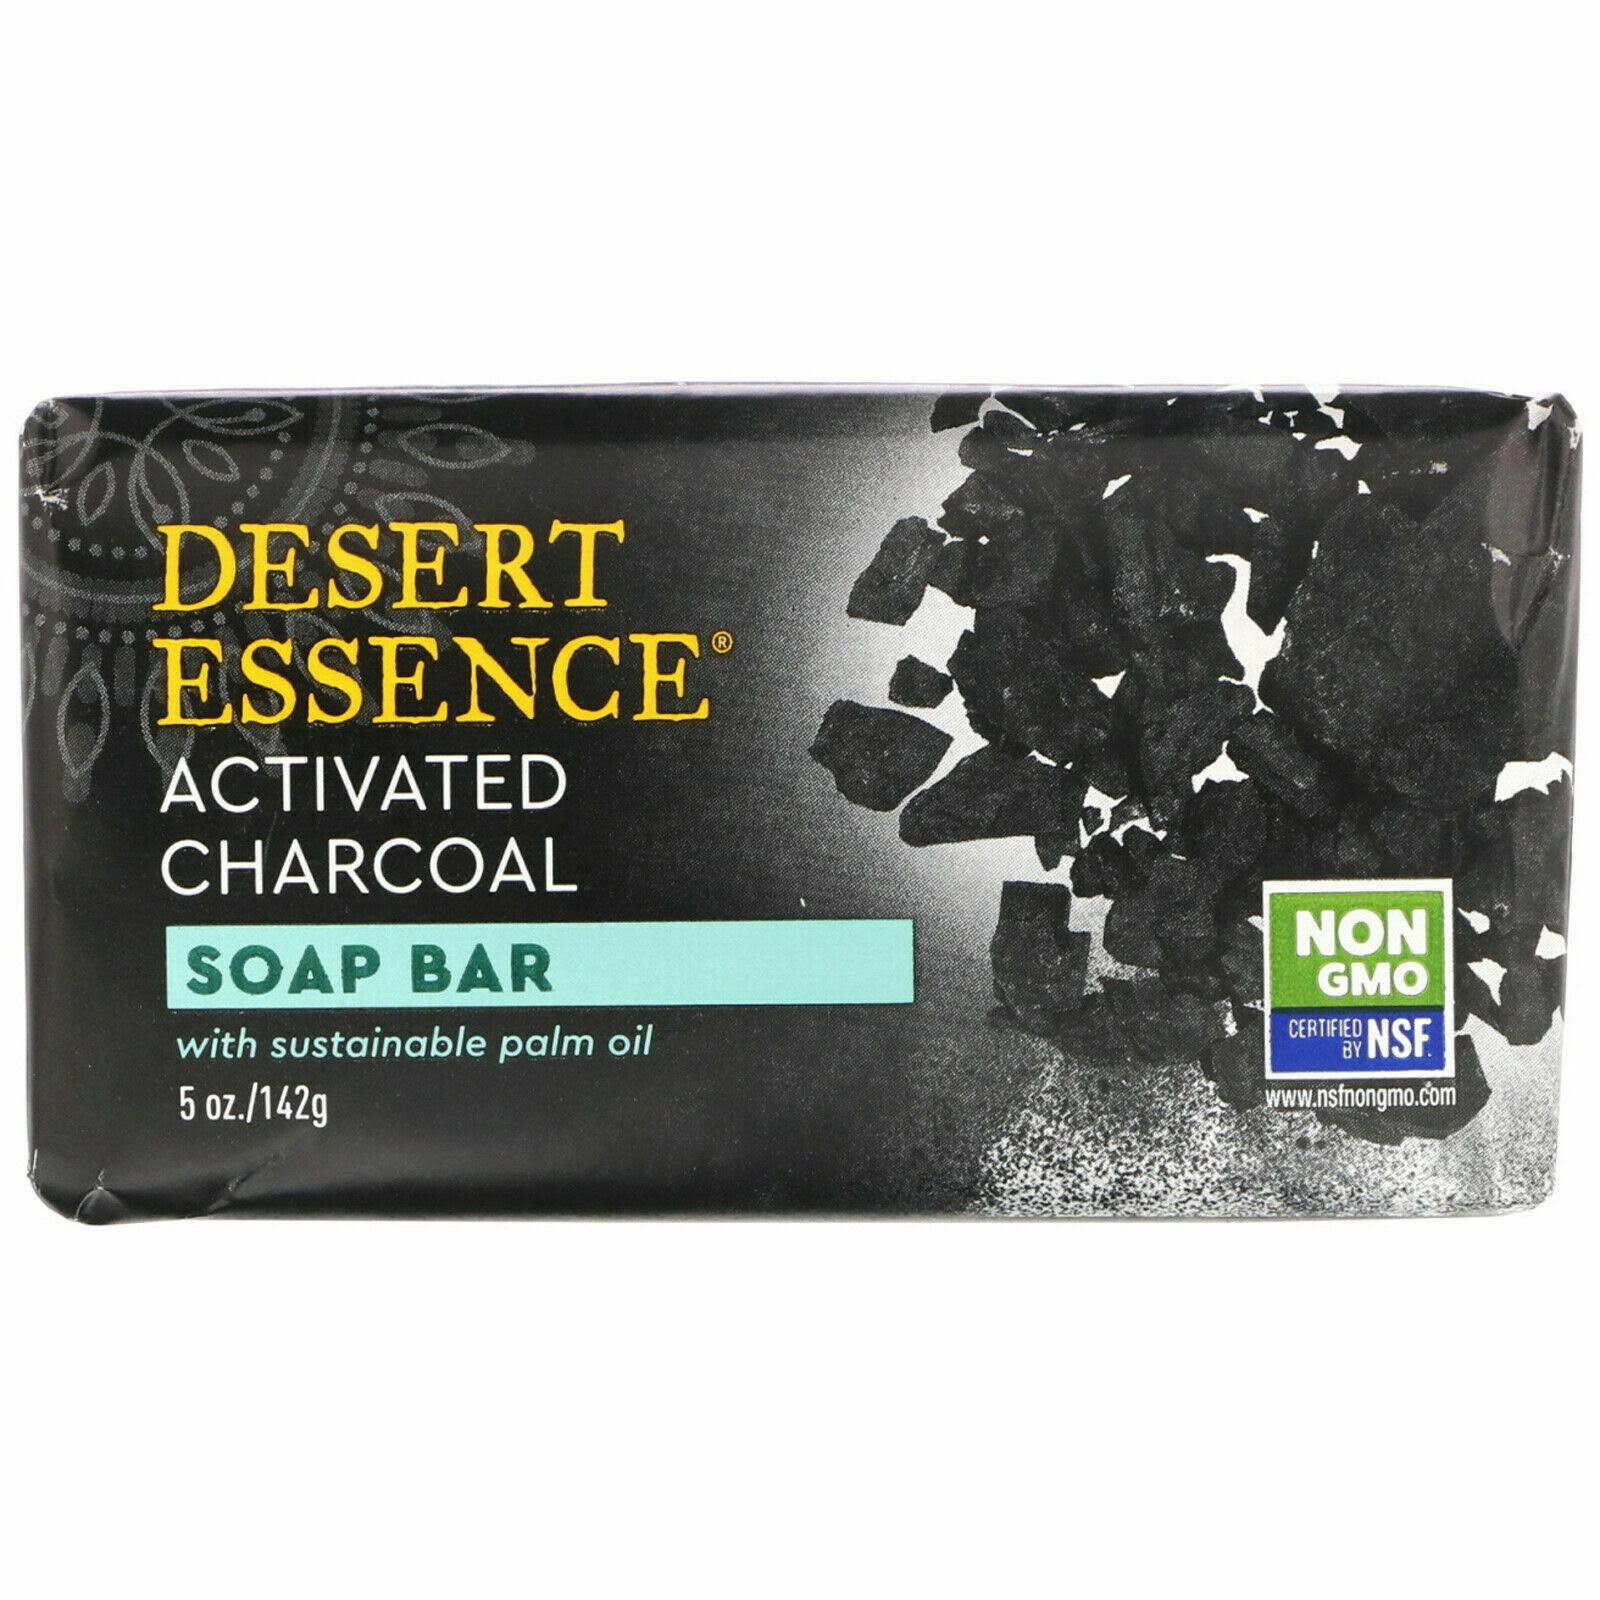 Desert Essence Activated Charcoal Bar Soap - 5oz